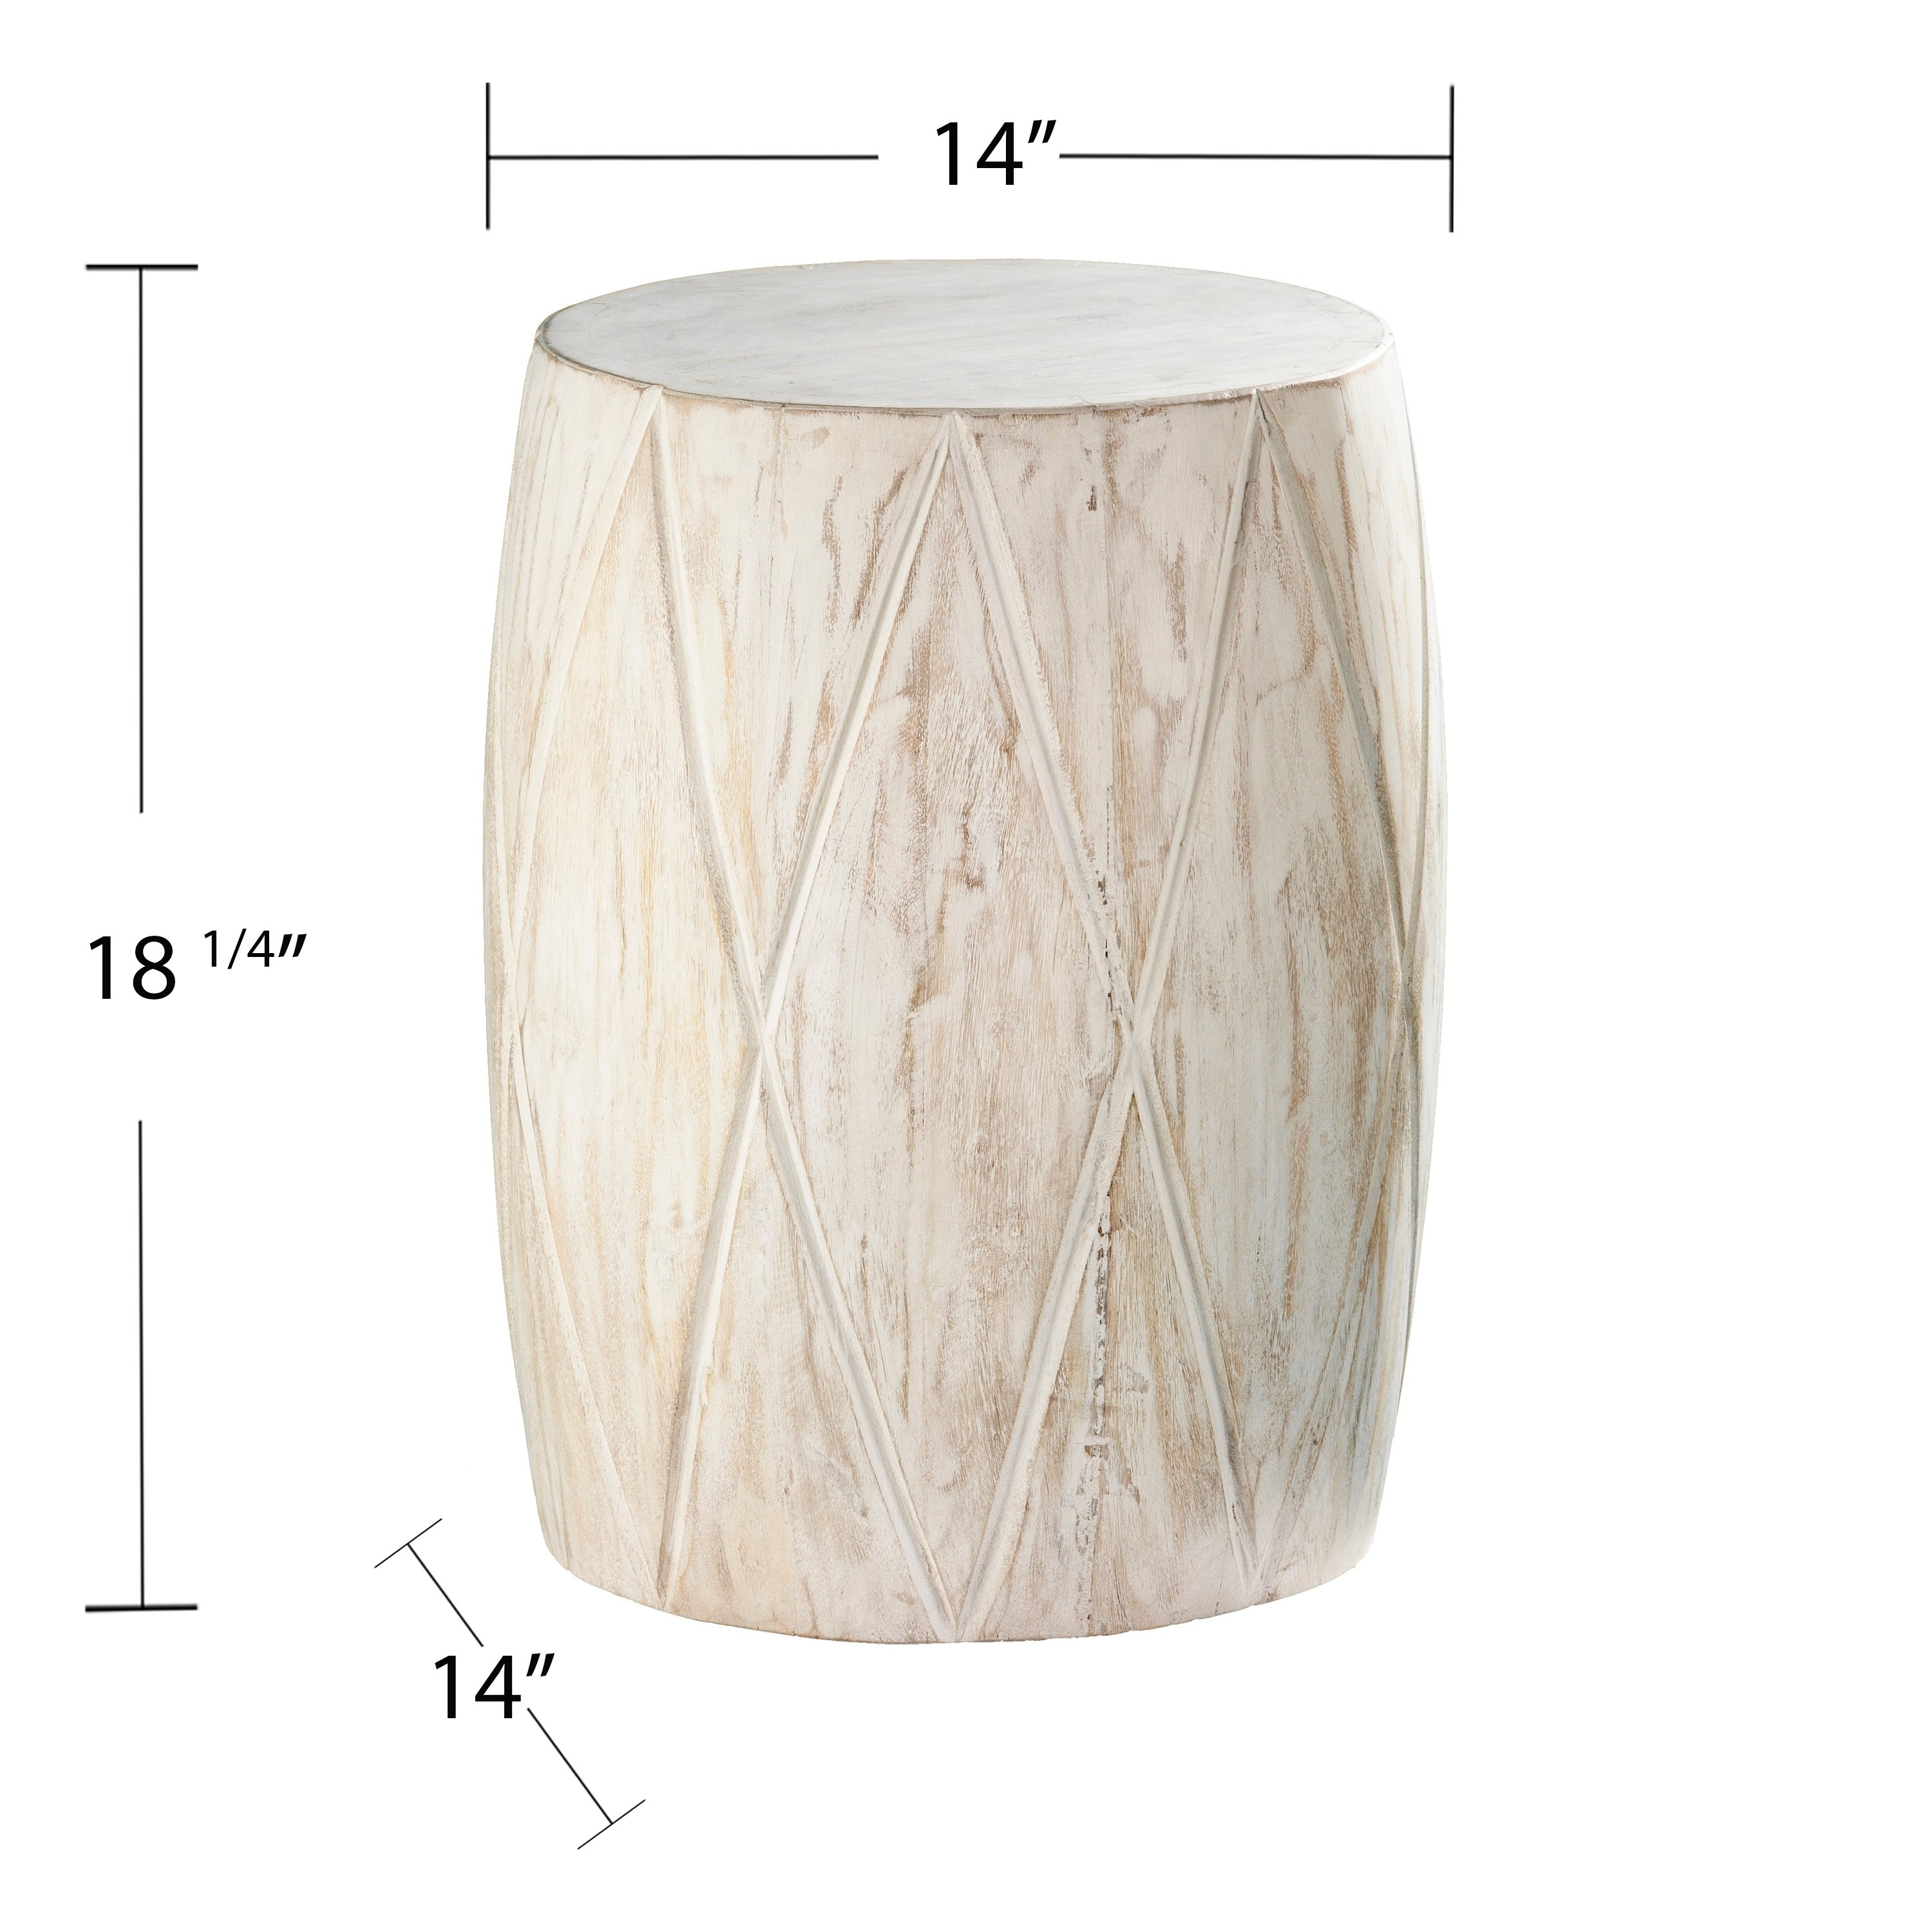 holly martin saco solid wood accent table stool free shipping today furniture paint marble nesting coffee canadian tire outdoor drop leaf desk living room decor oak nest tables